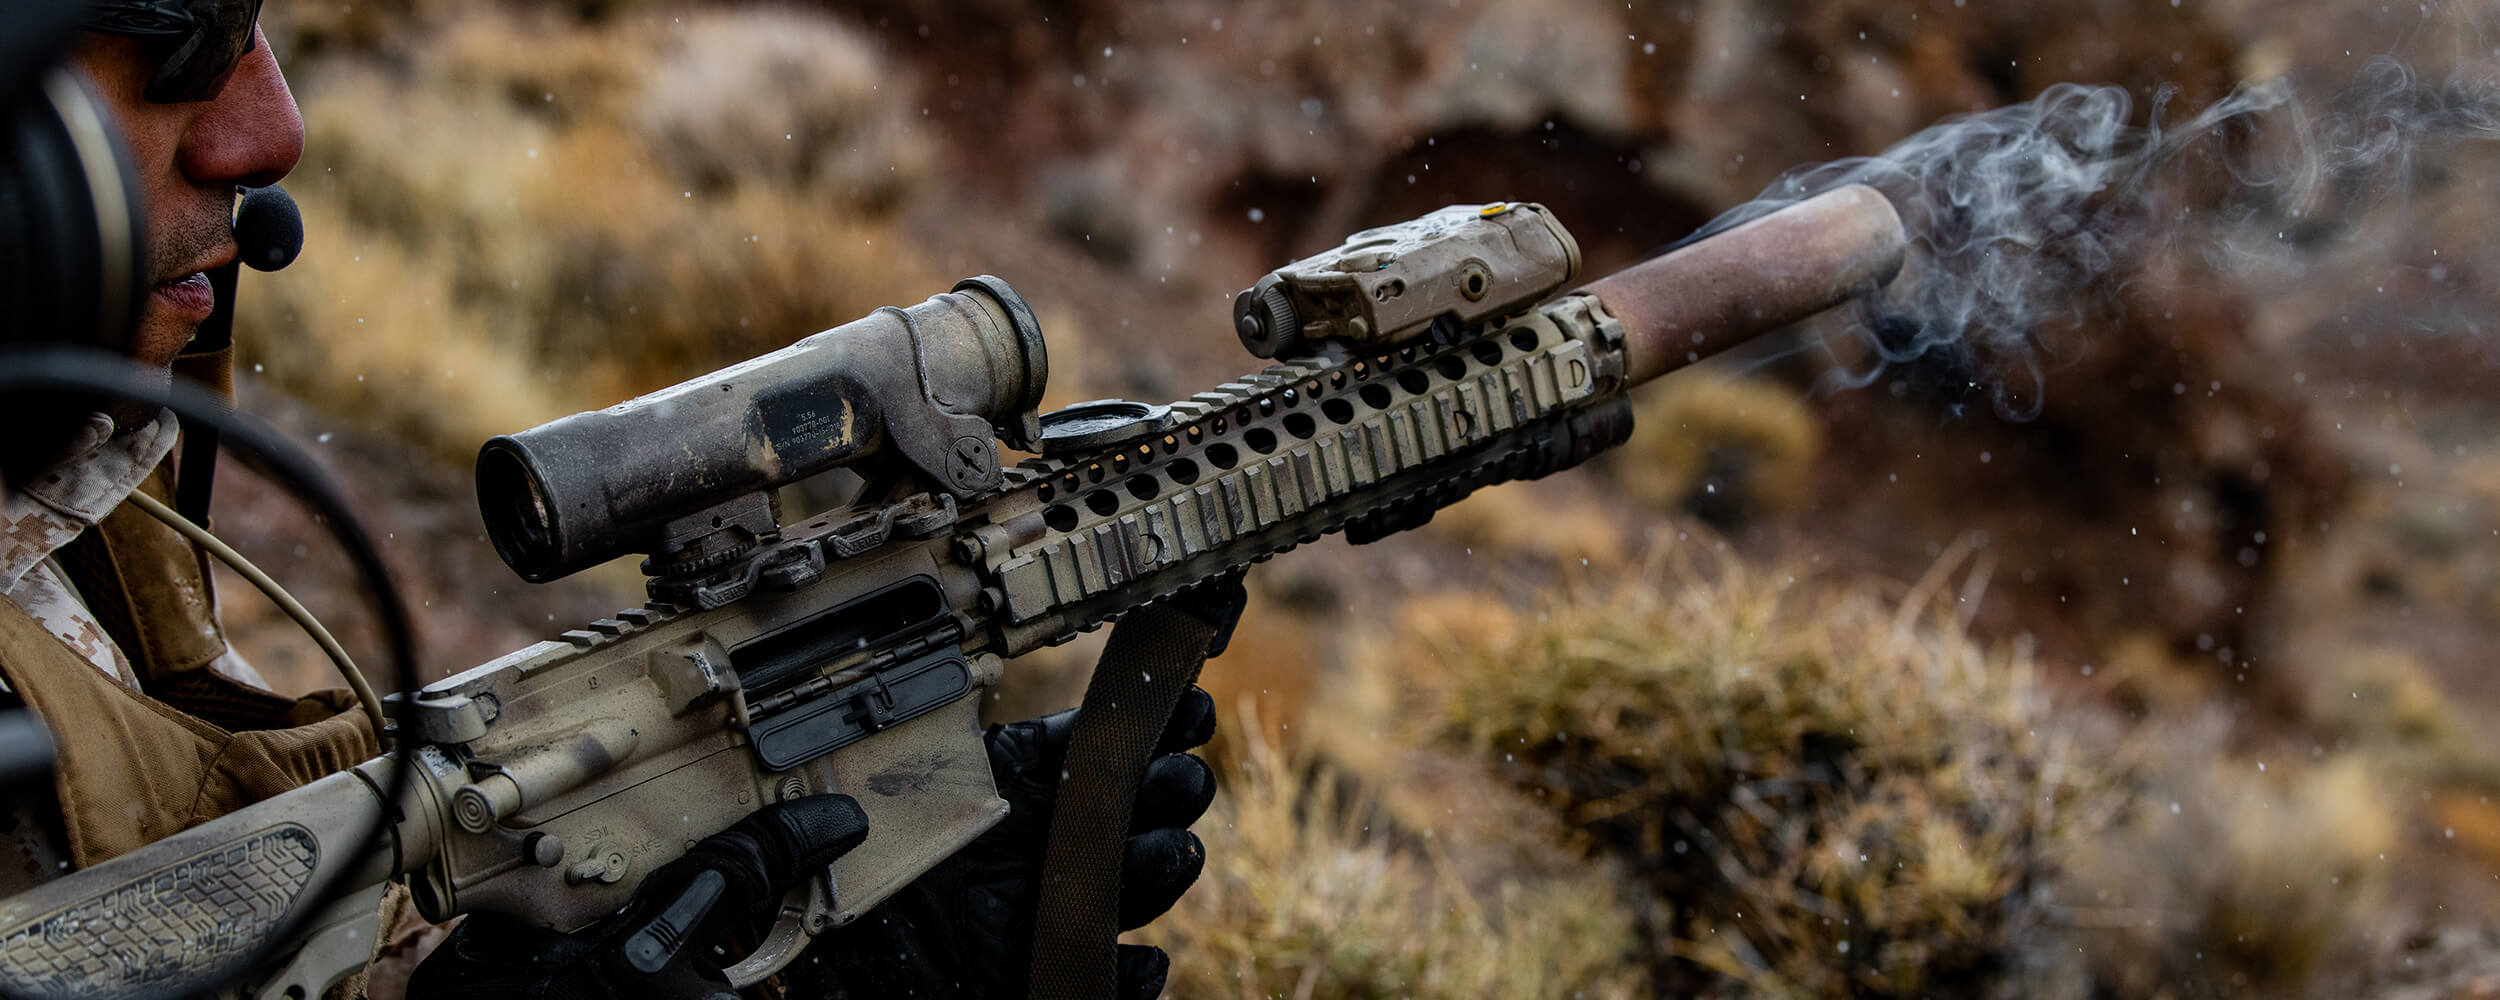 SOCOM Suppressors from Surefire